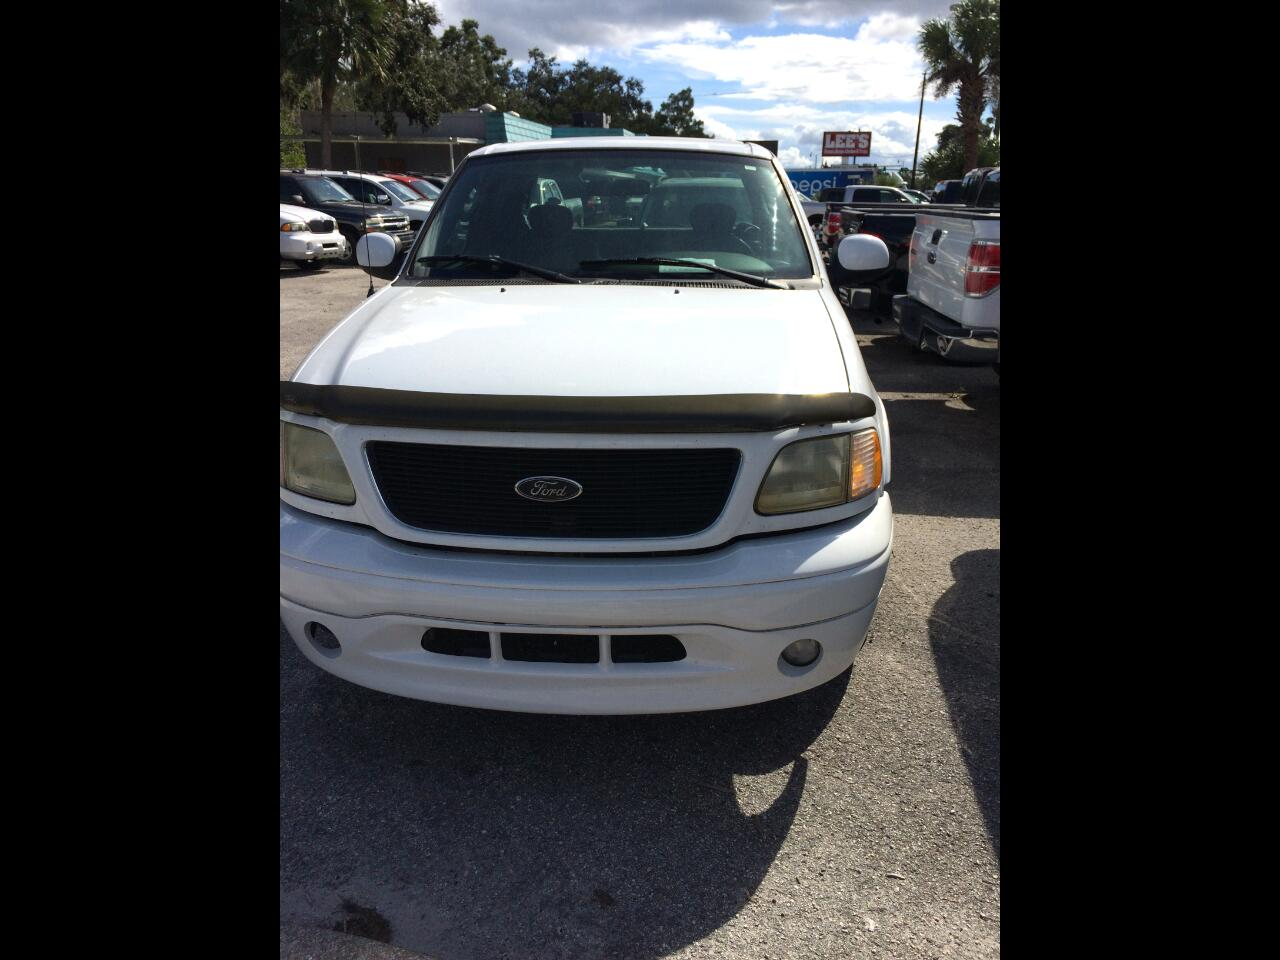 2003 Ford F-150 Supercab Flareside 139